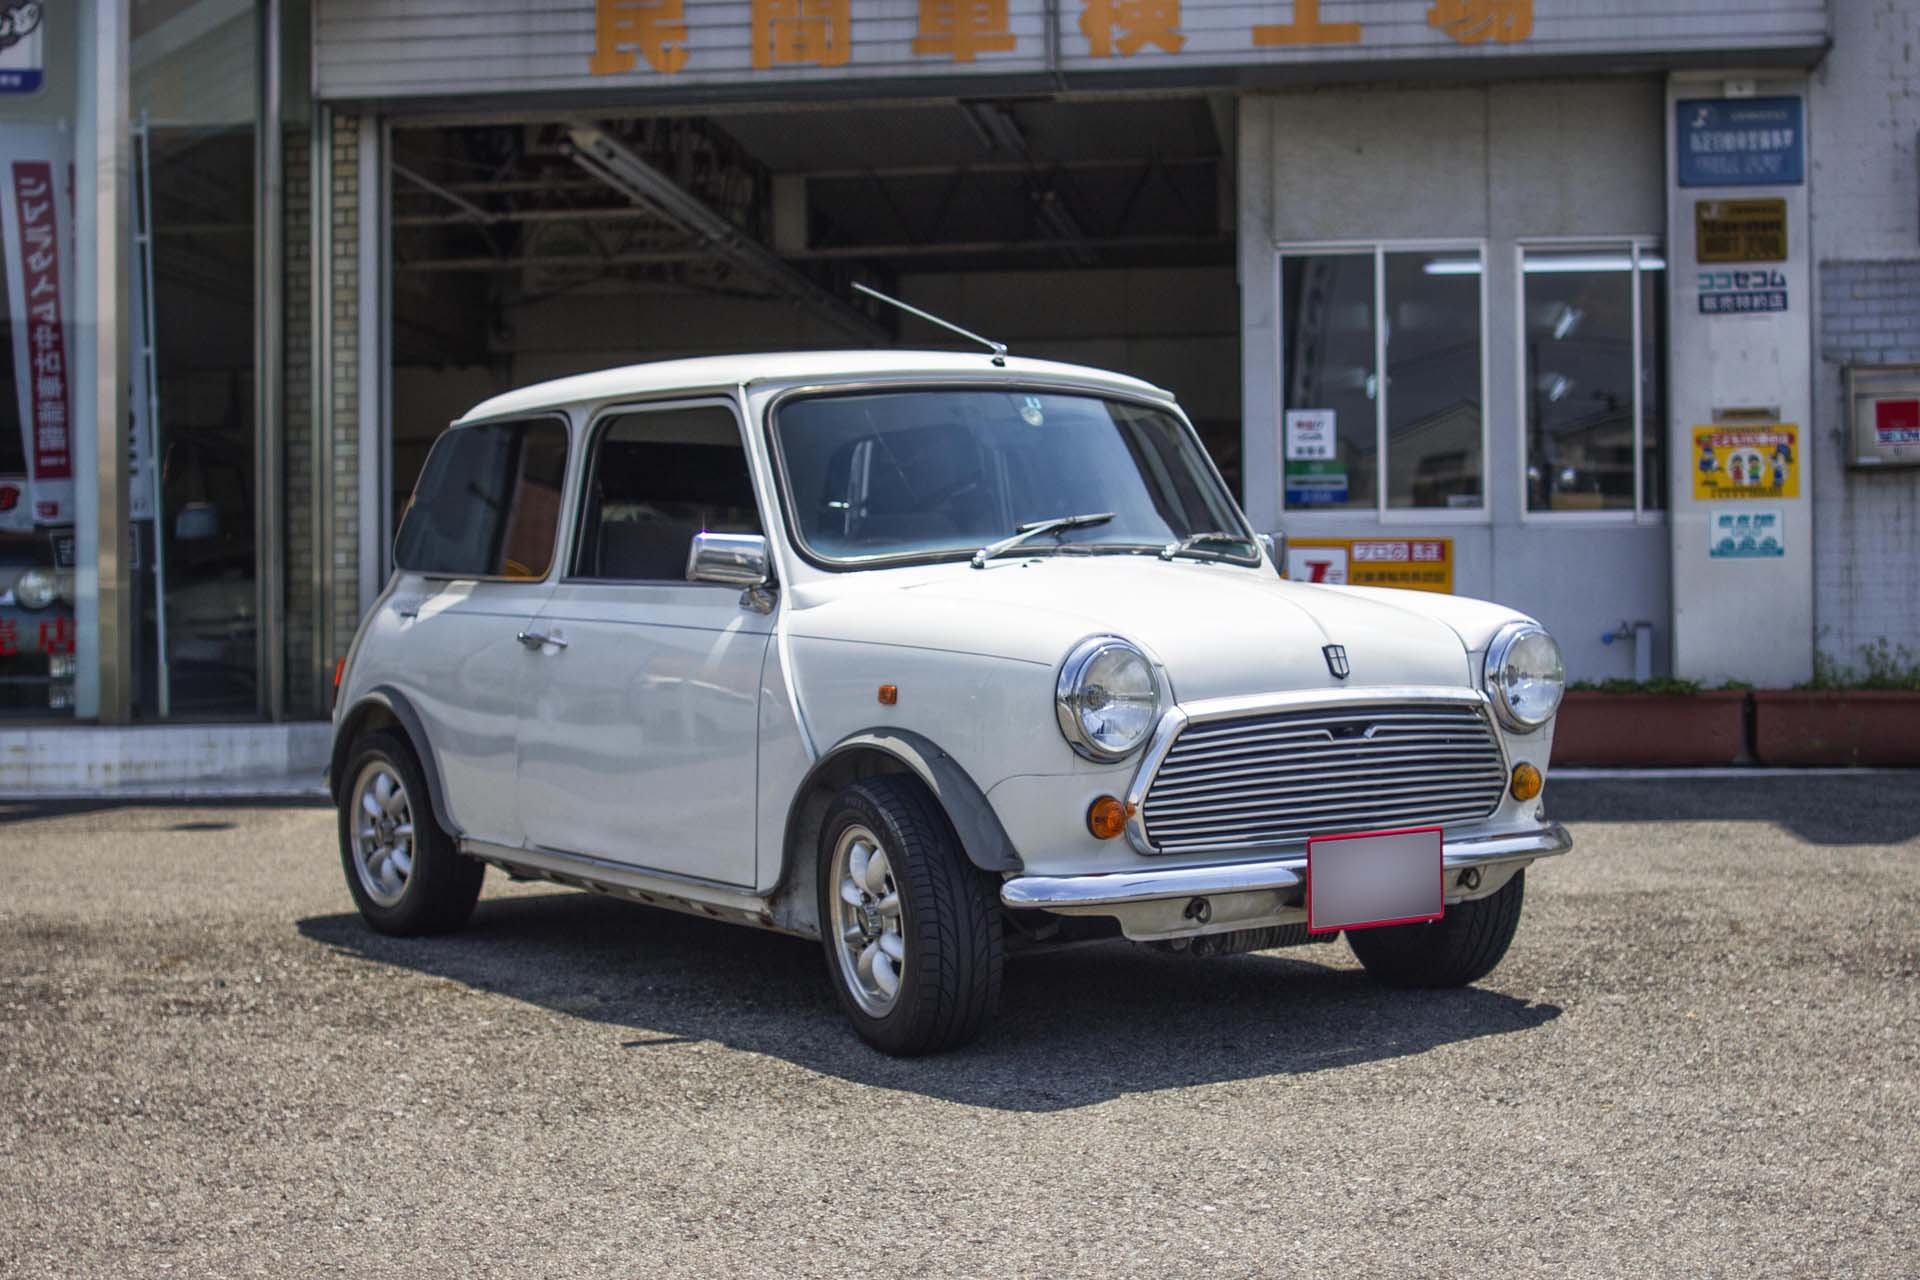 1990 Rover Mini Mayfair 4mt Amagasaki Motor Co Ltd Japan Used